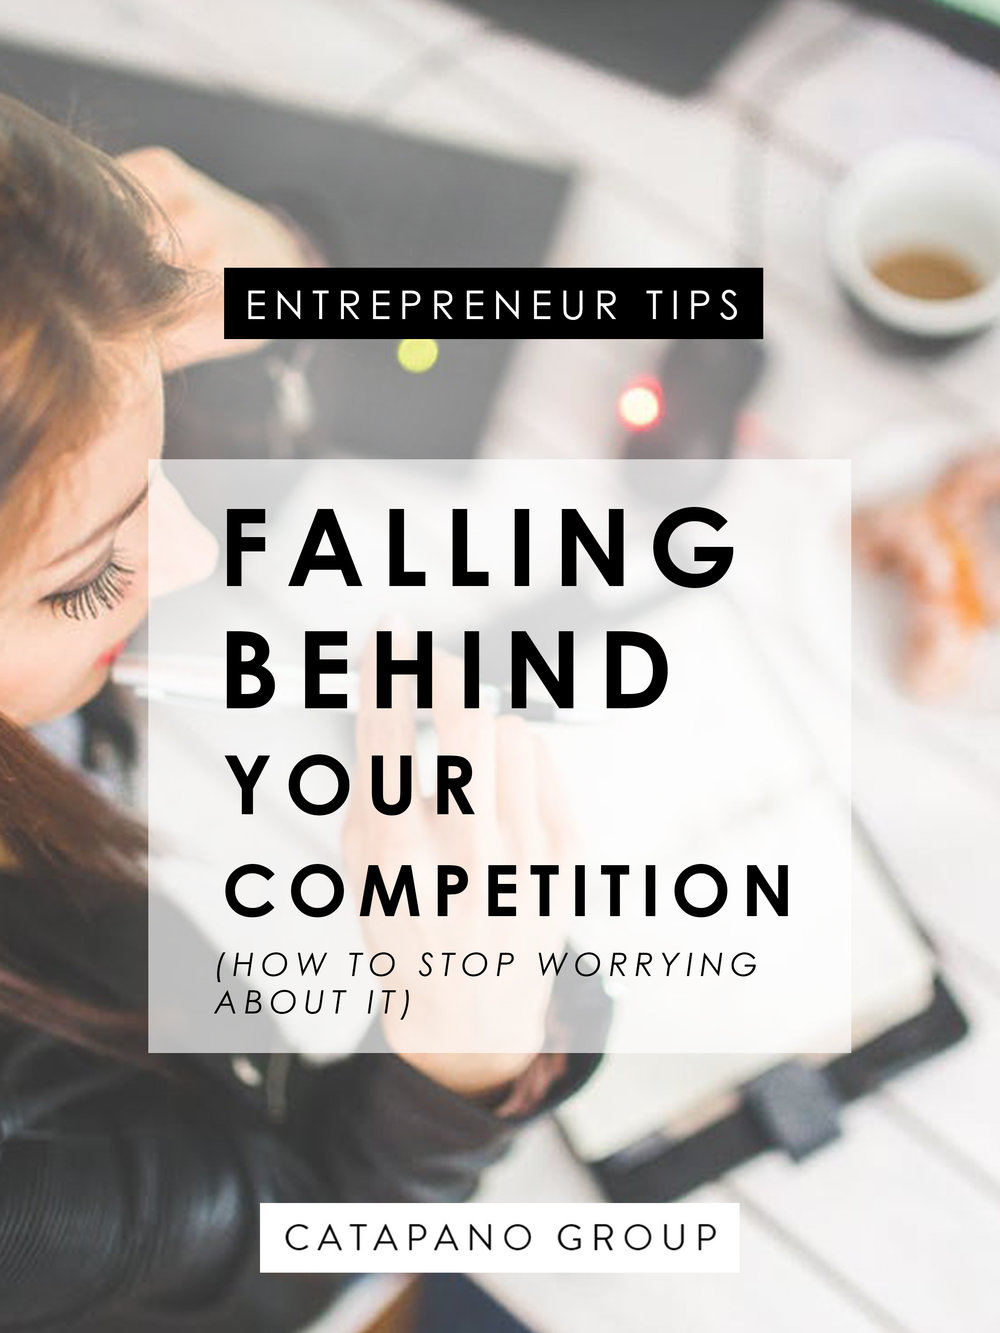 Falling Behind Your Competition and How To Stop Worrying About It